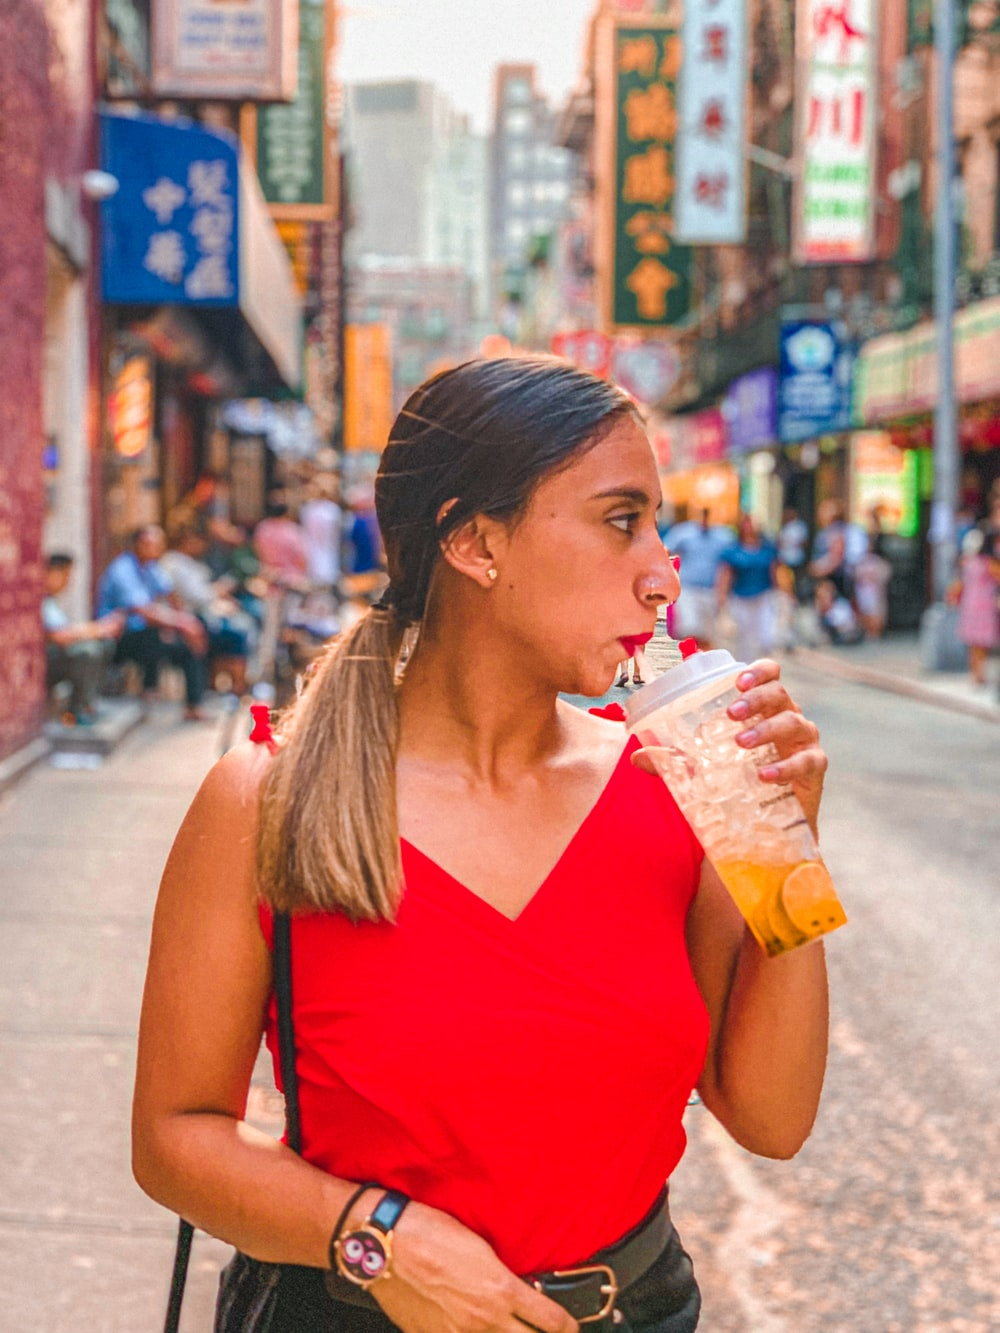 woman sipping drinking cup